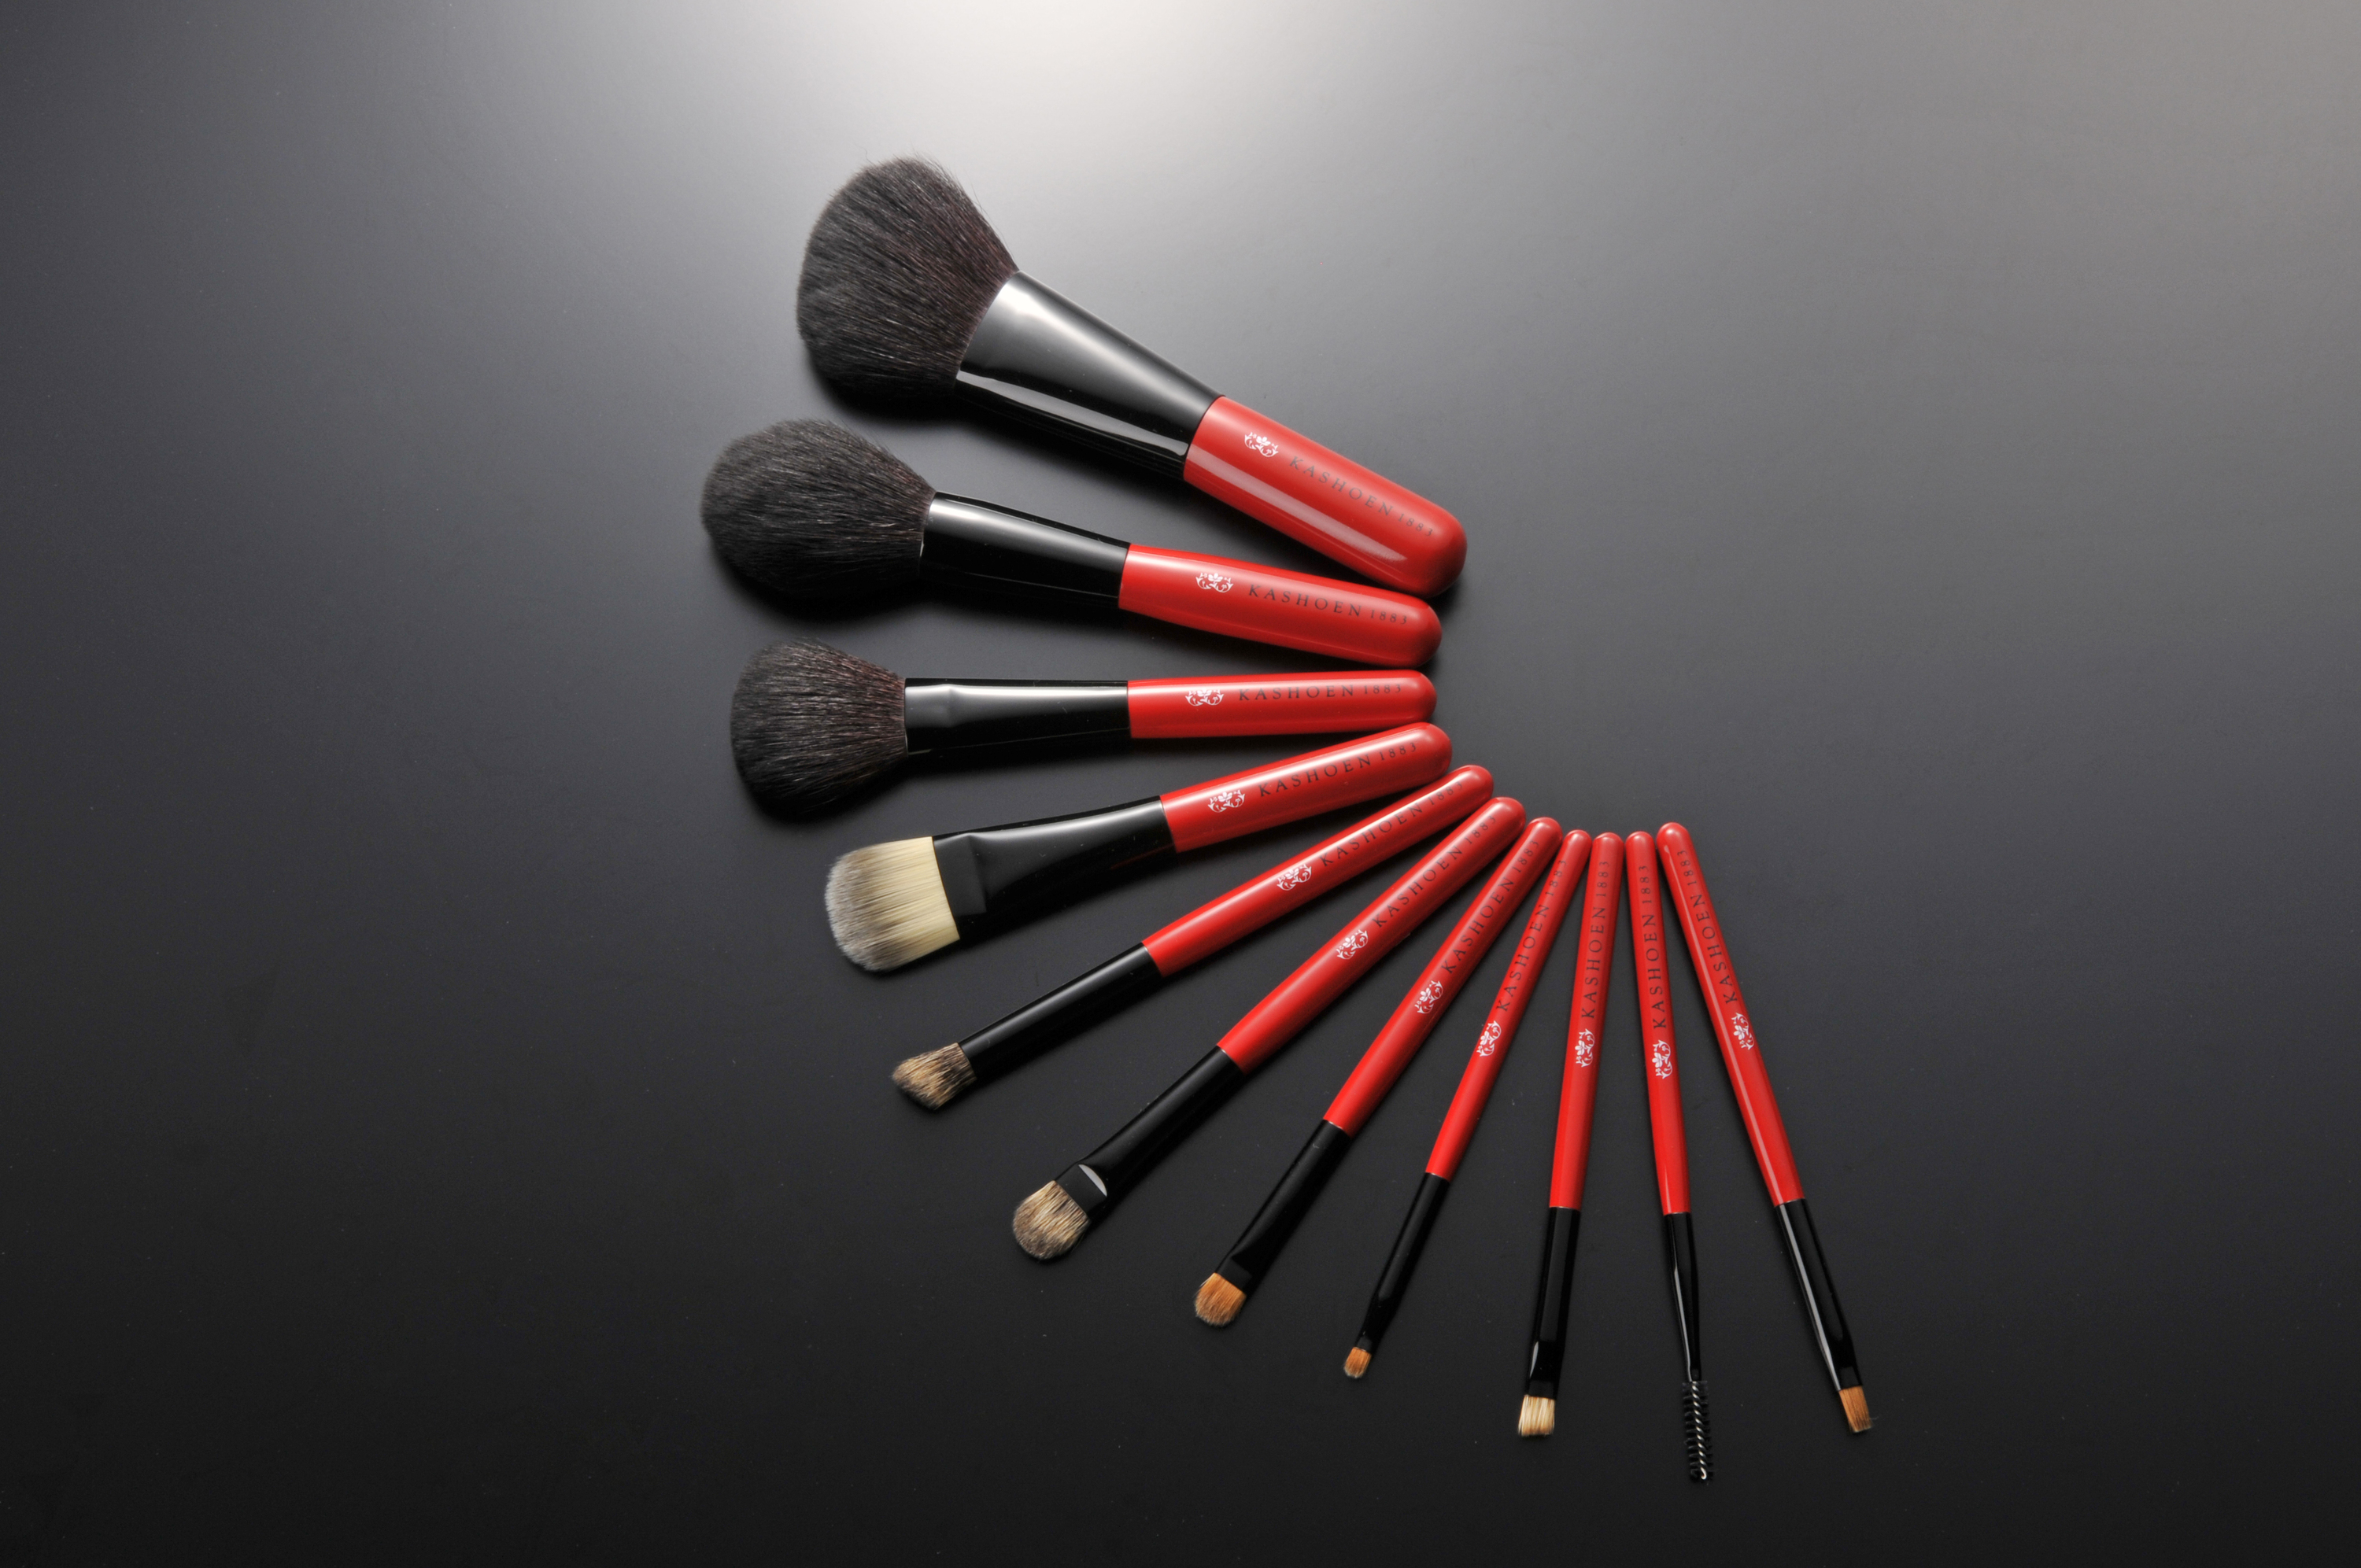 Use a celebrity make-up brush